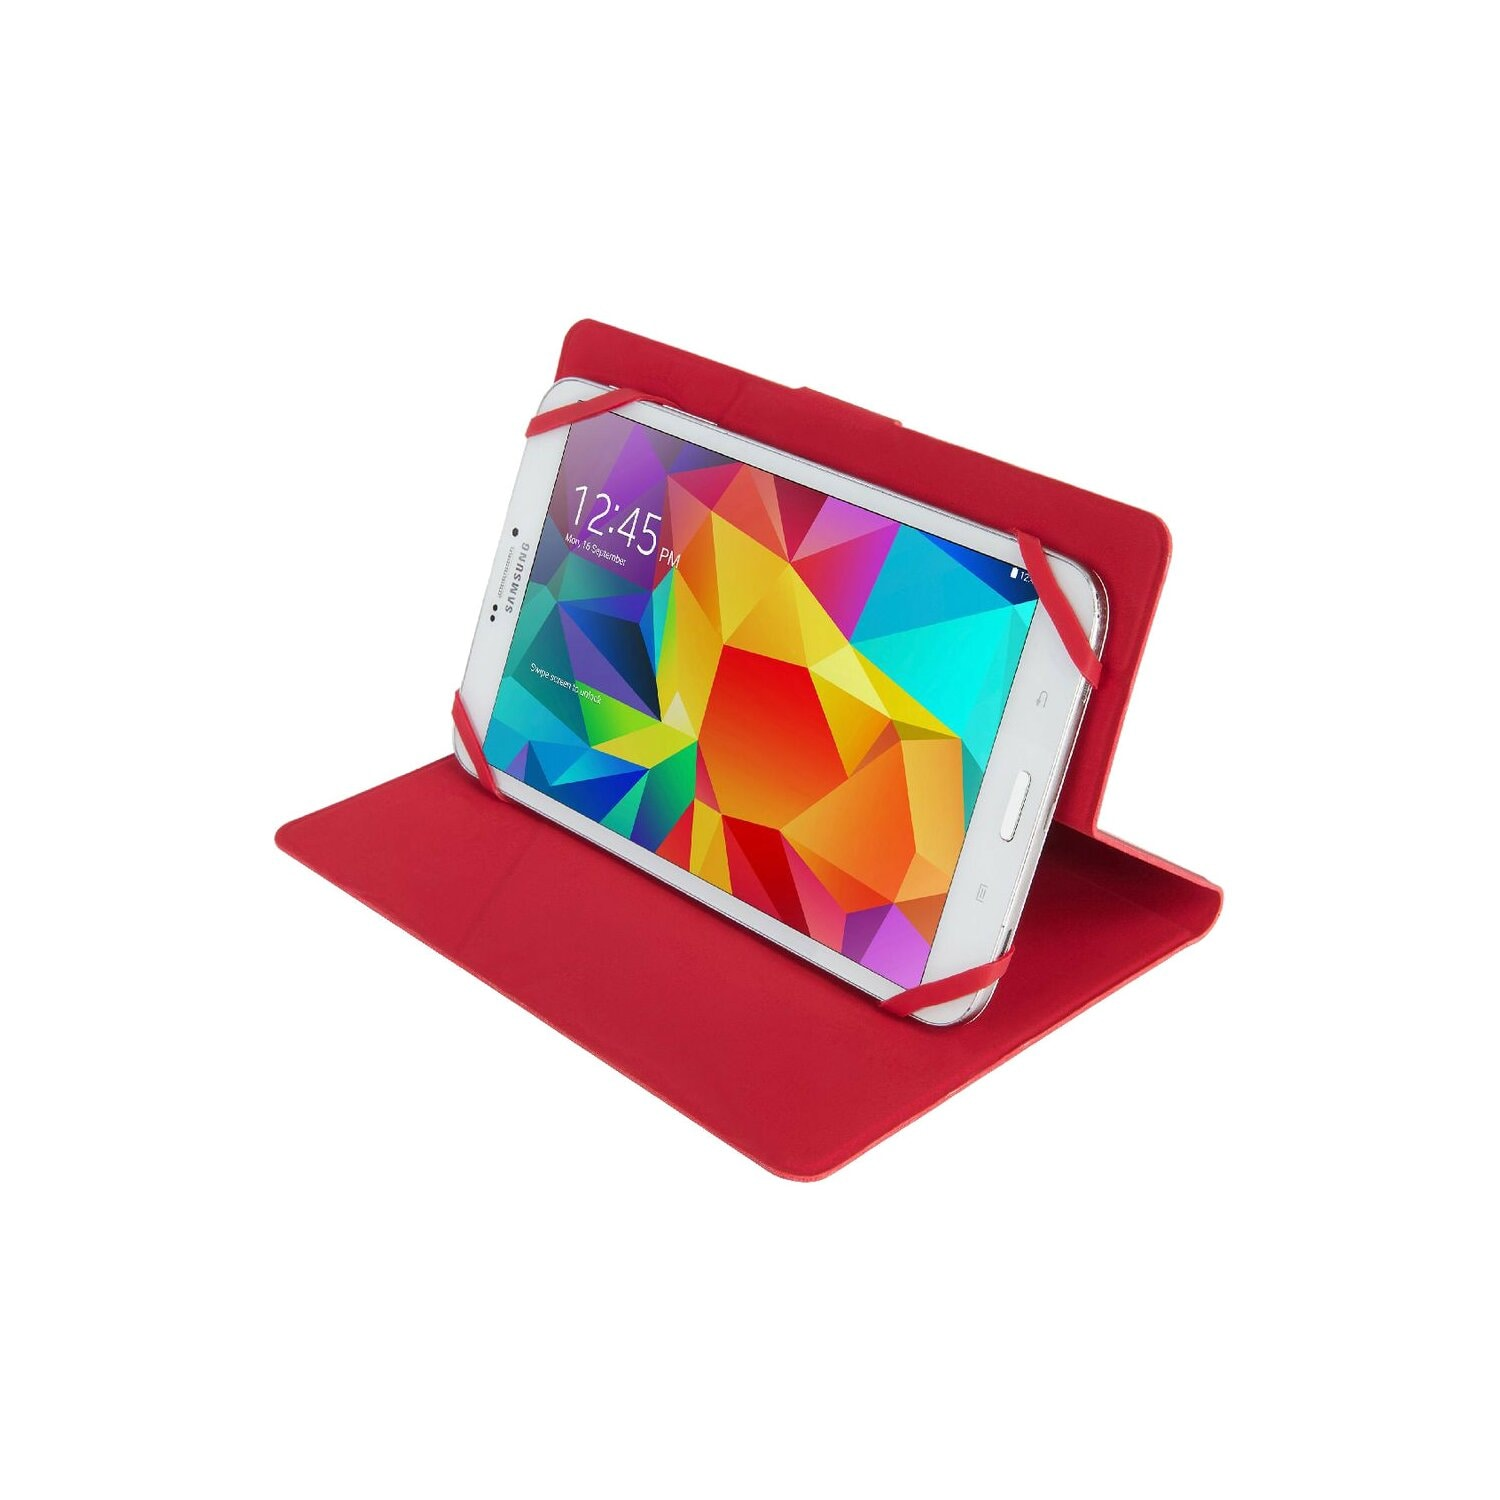 Etui na tablet TUCANO Piega Small do 7 cali Czerwony